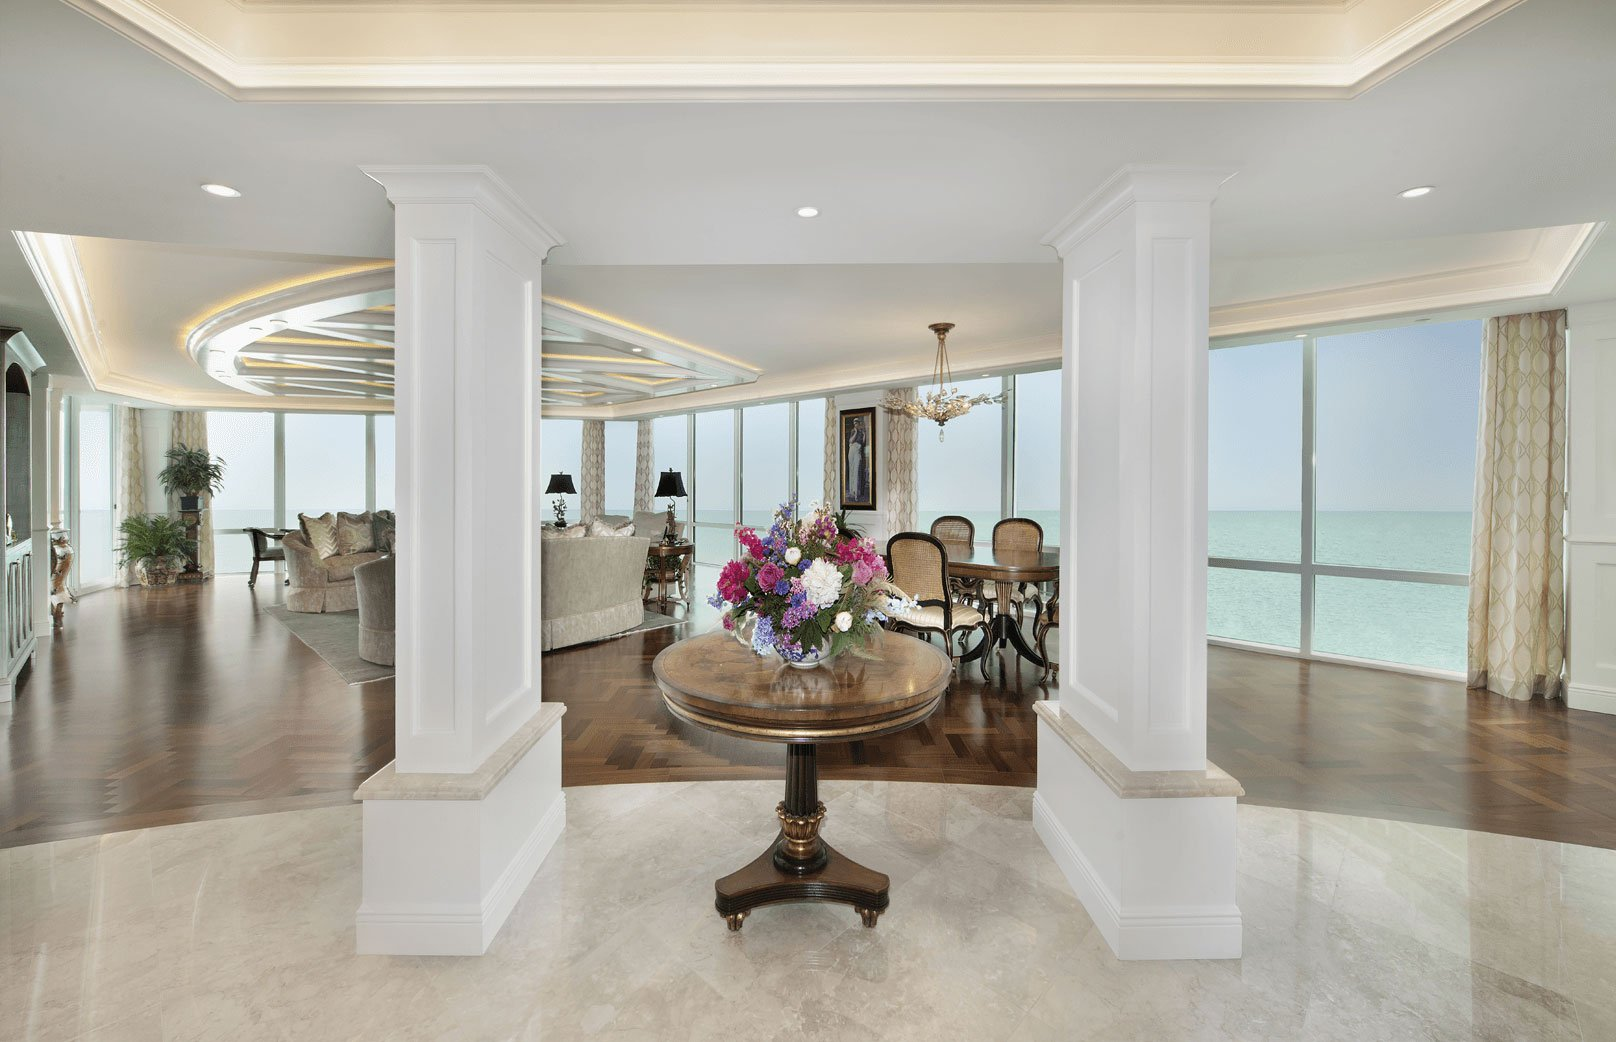 Foyer And Great Room : Elegance refined wright interior group